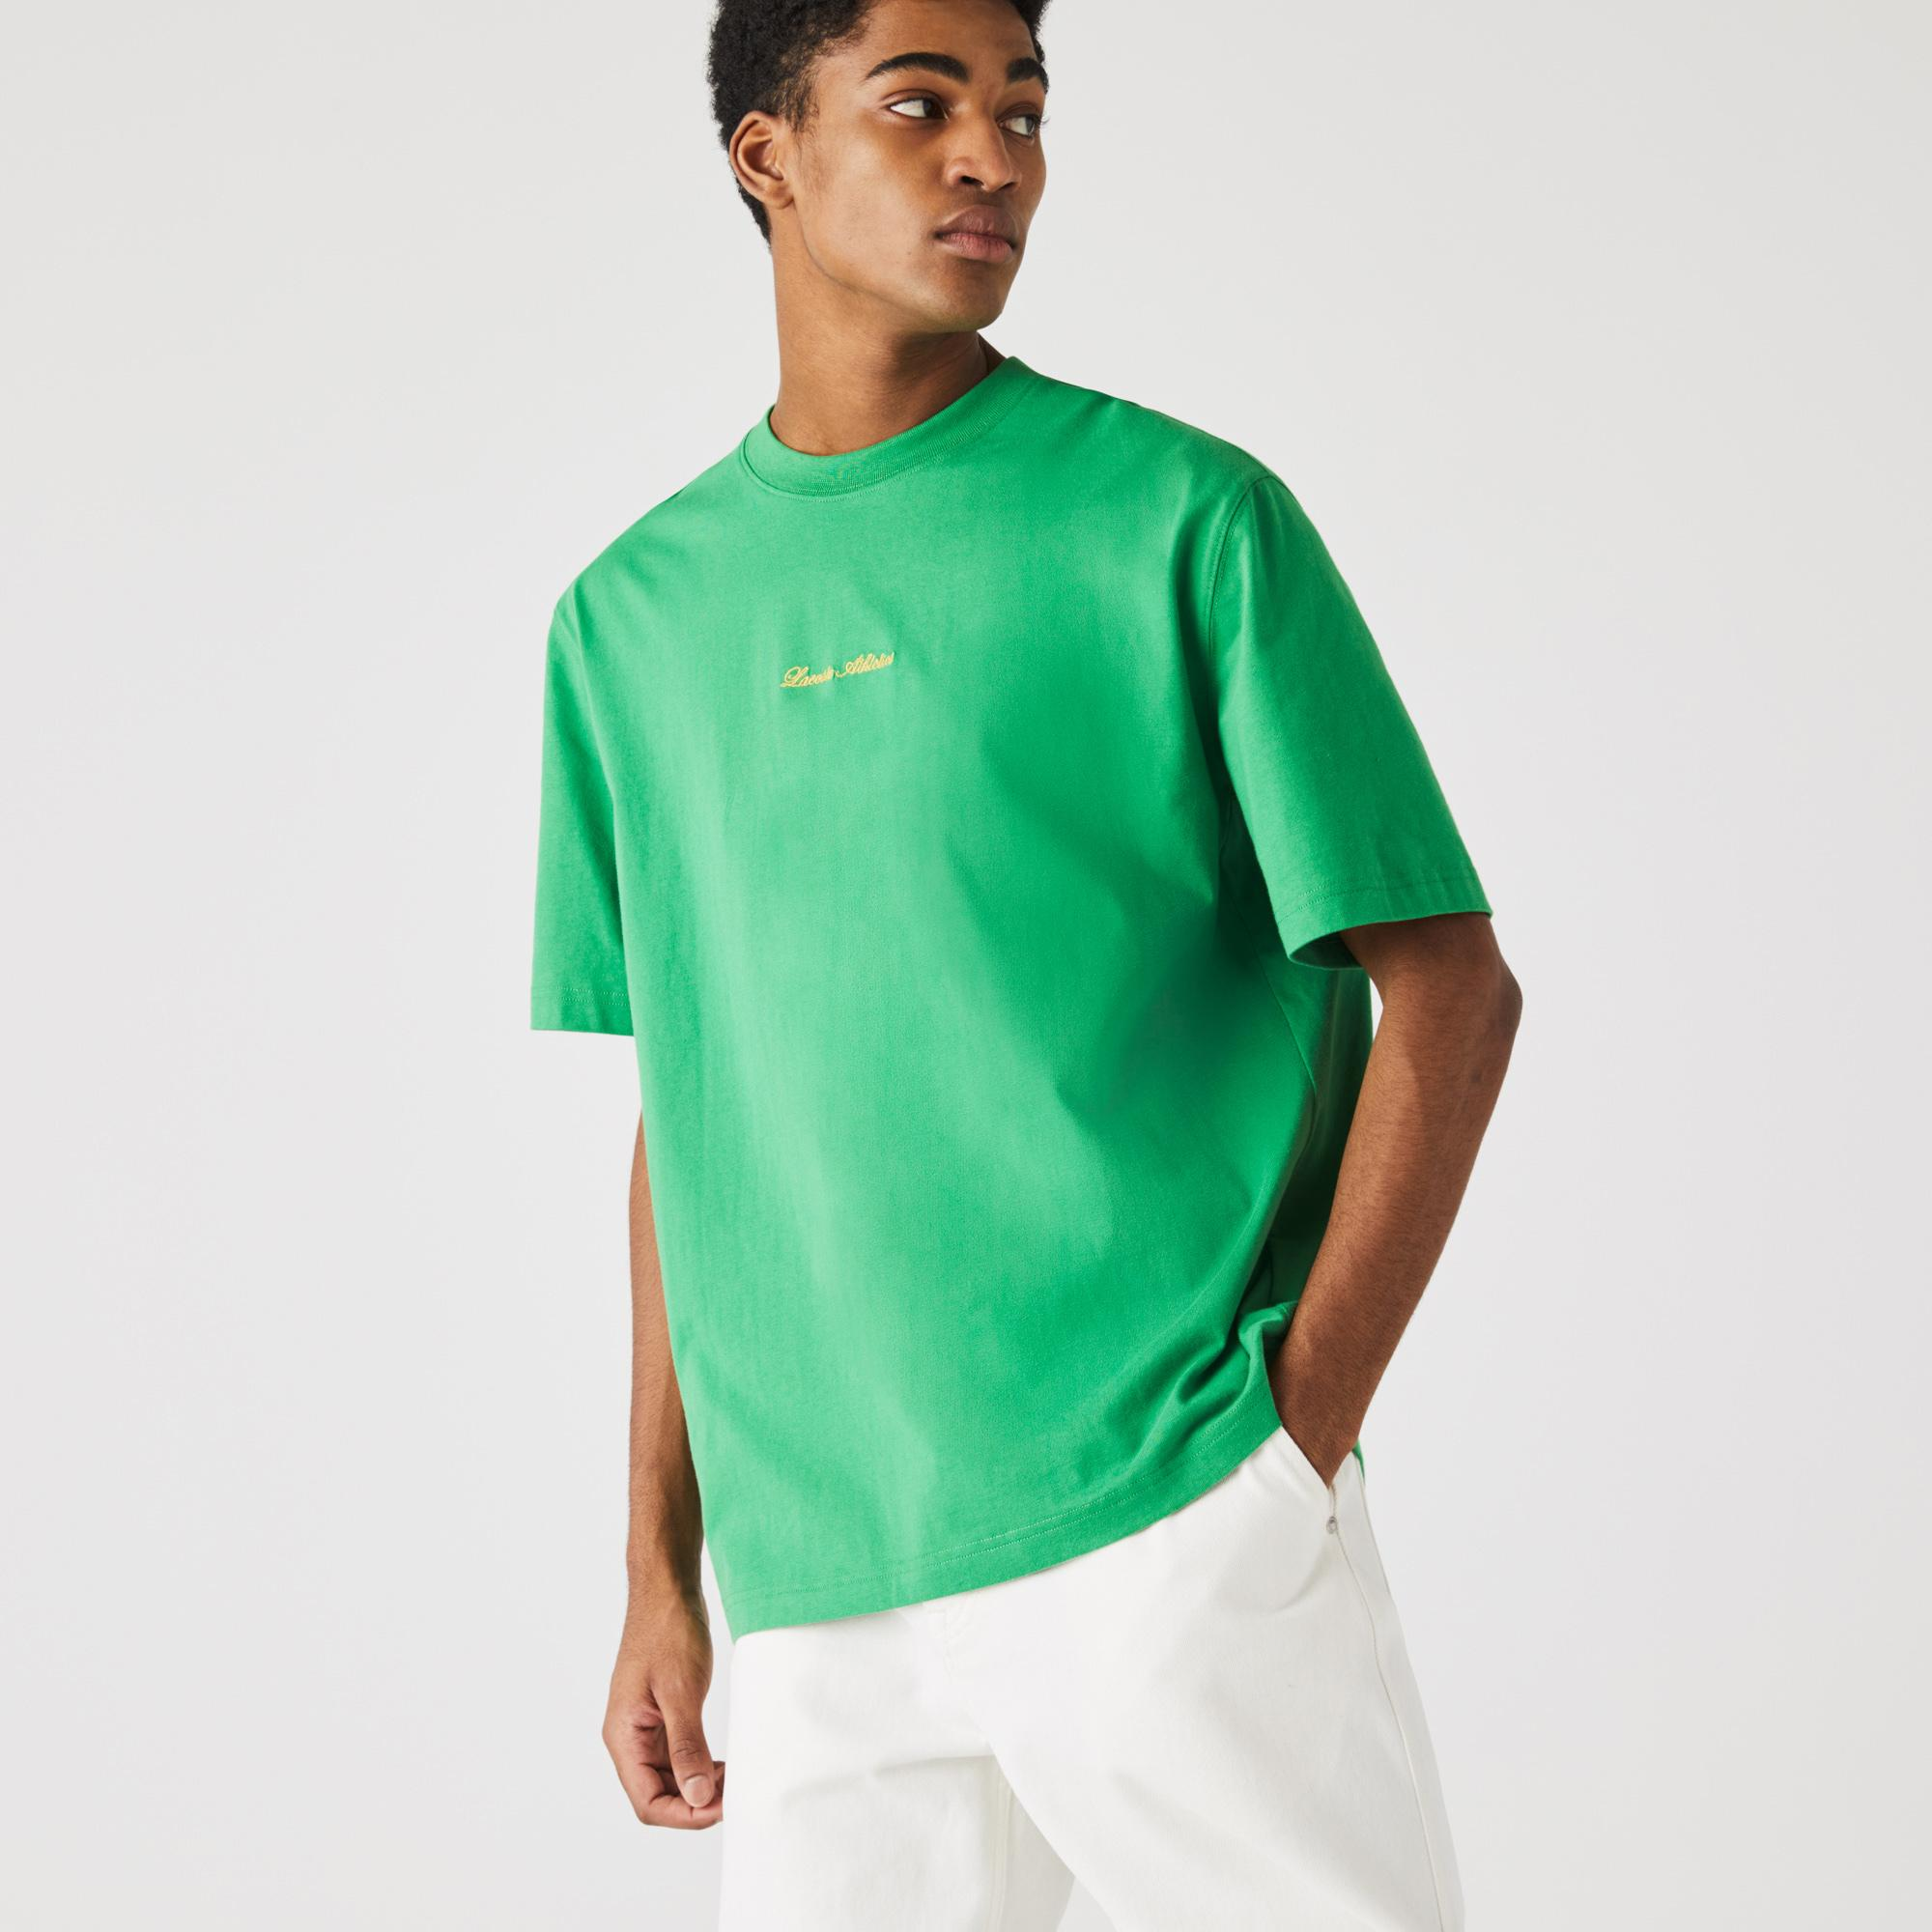 Lacoste Unisex LIVE Loose Fit Golden Embroidery Cotton T-shirt